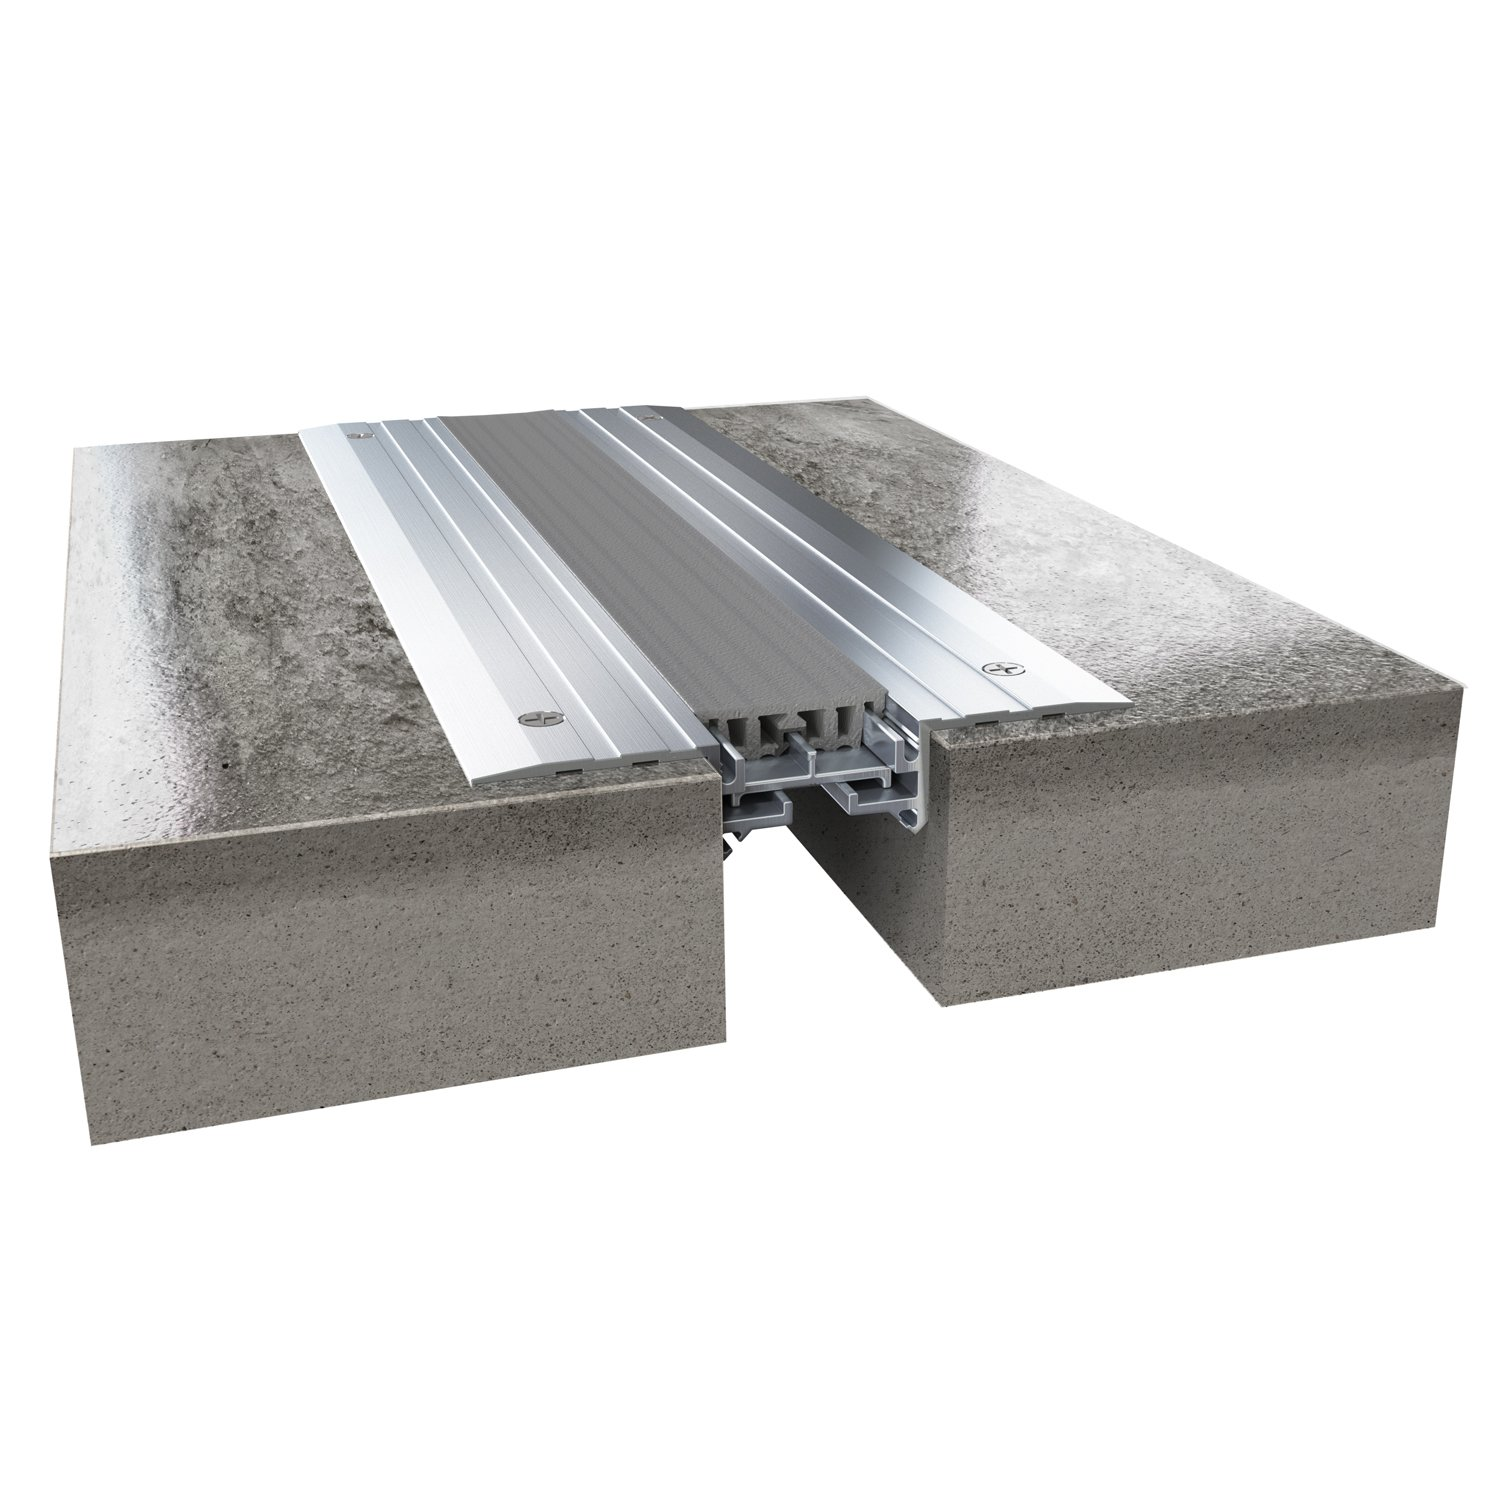 104 Series Floor System Expansion Joints